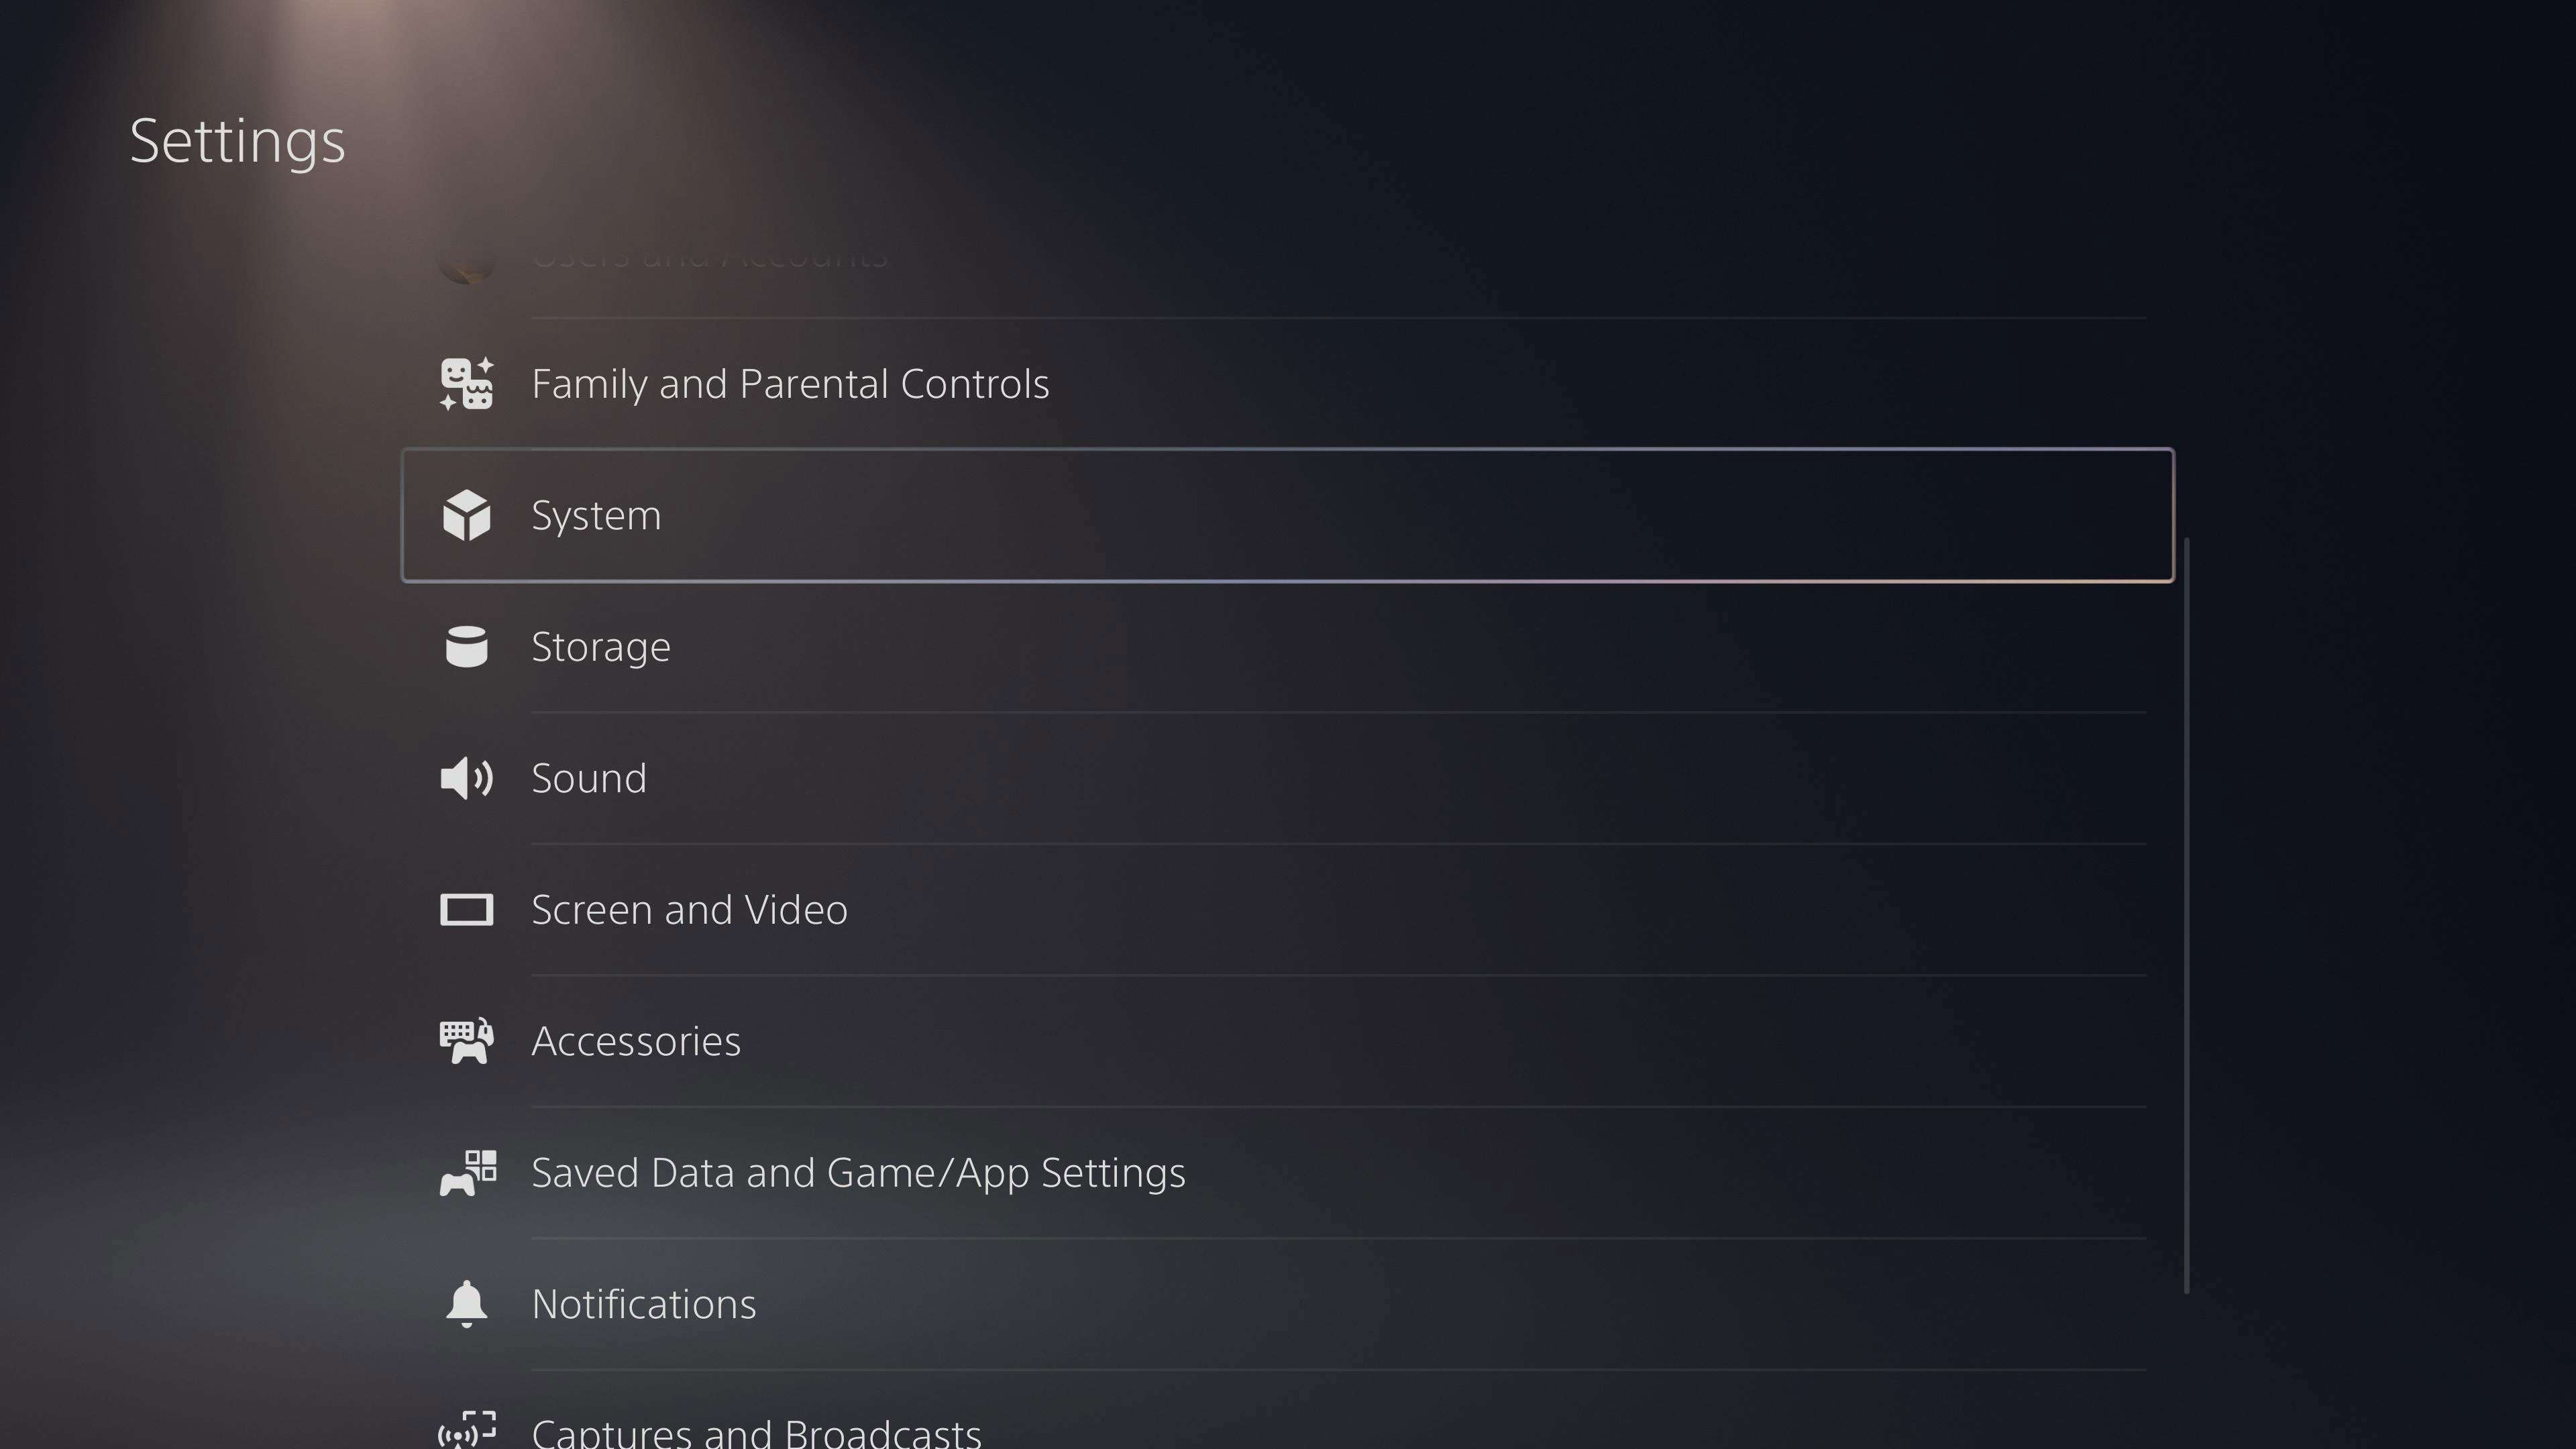 System in PS5 Settings